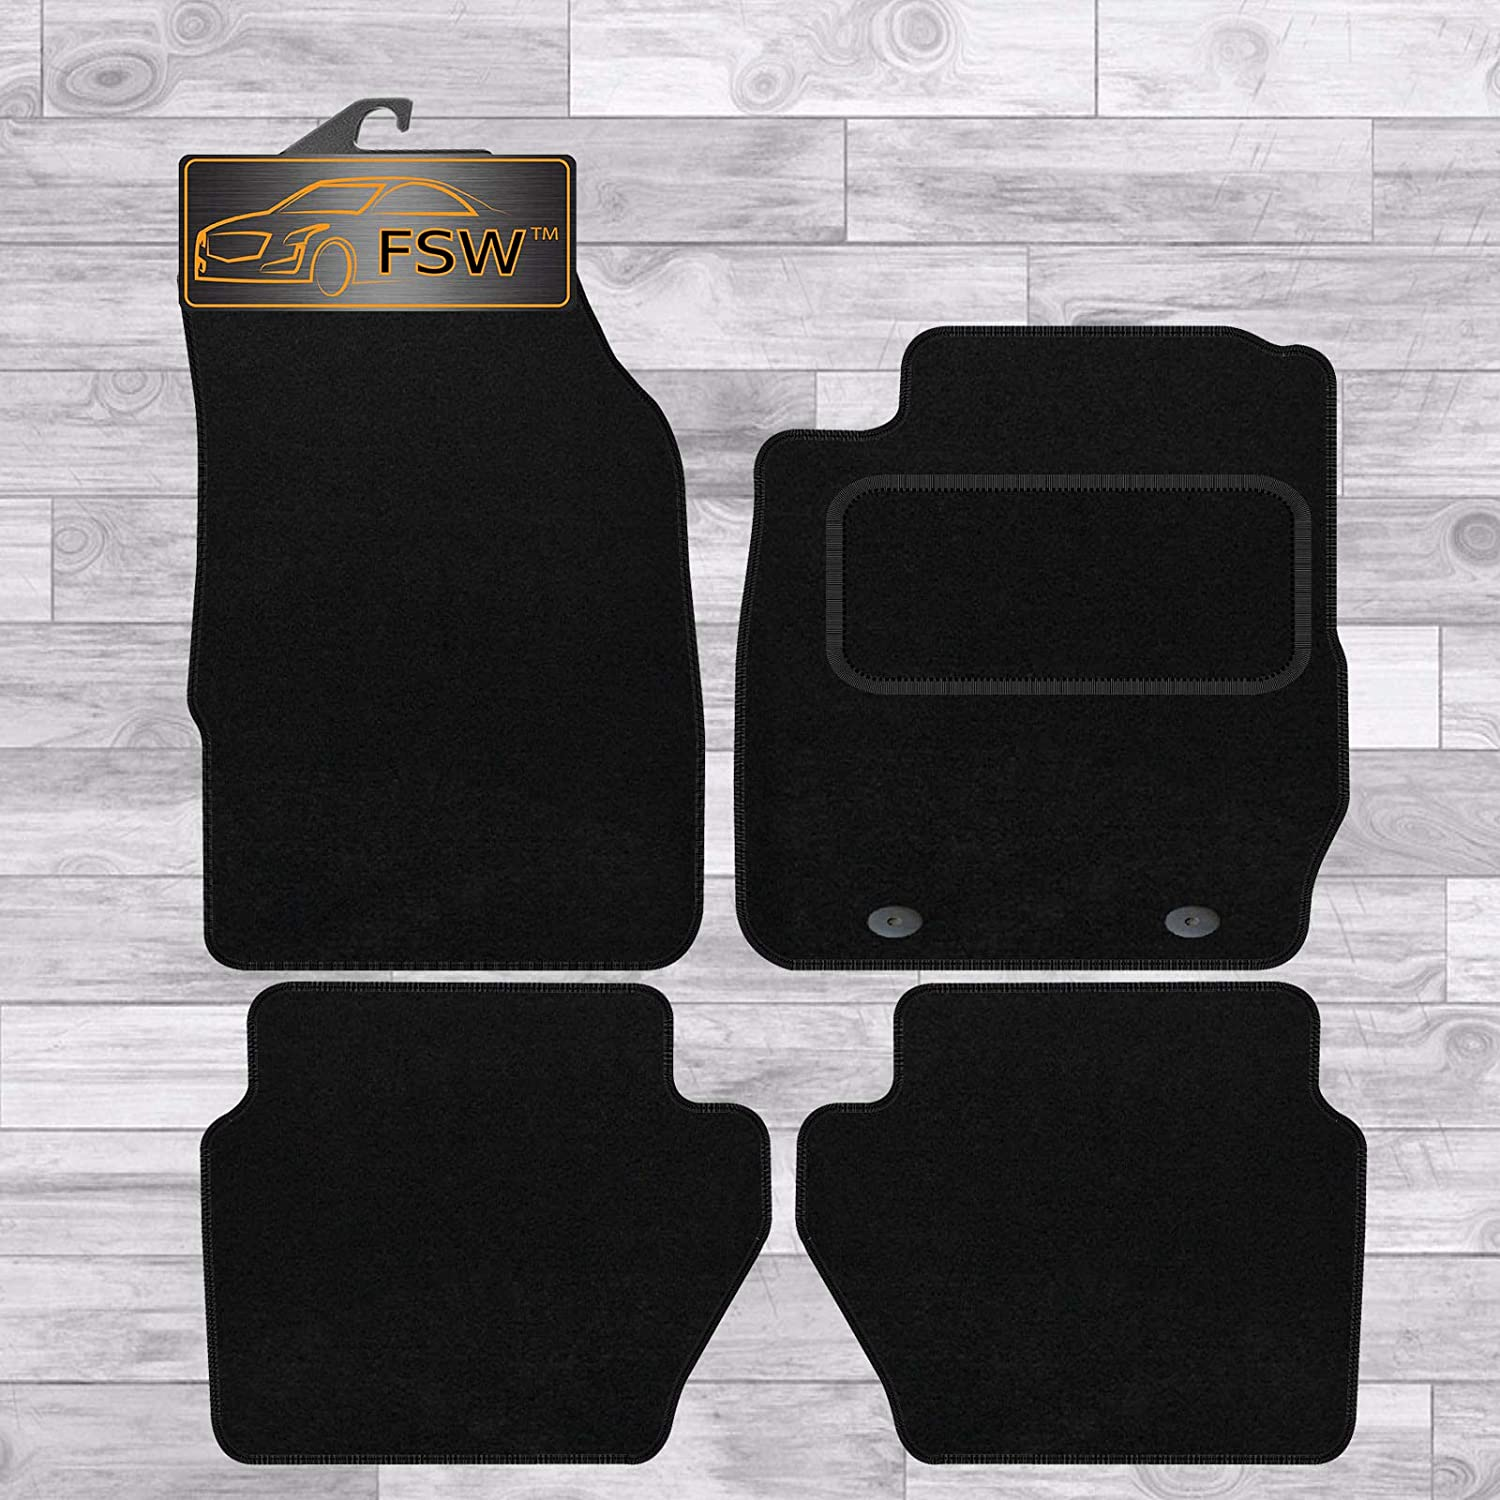 FSW Fiesta Mk7 2009-2011 Lhd Oval Fixing Tailored Classic Carpet Car Floor Mats Black